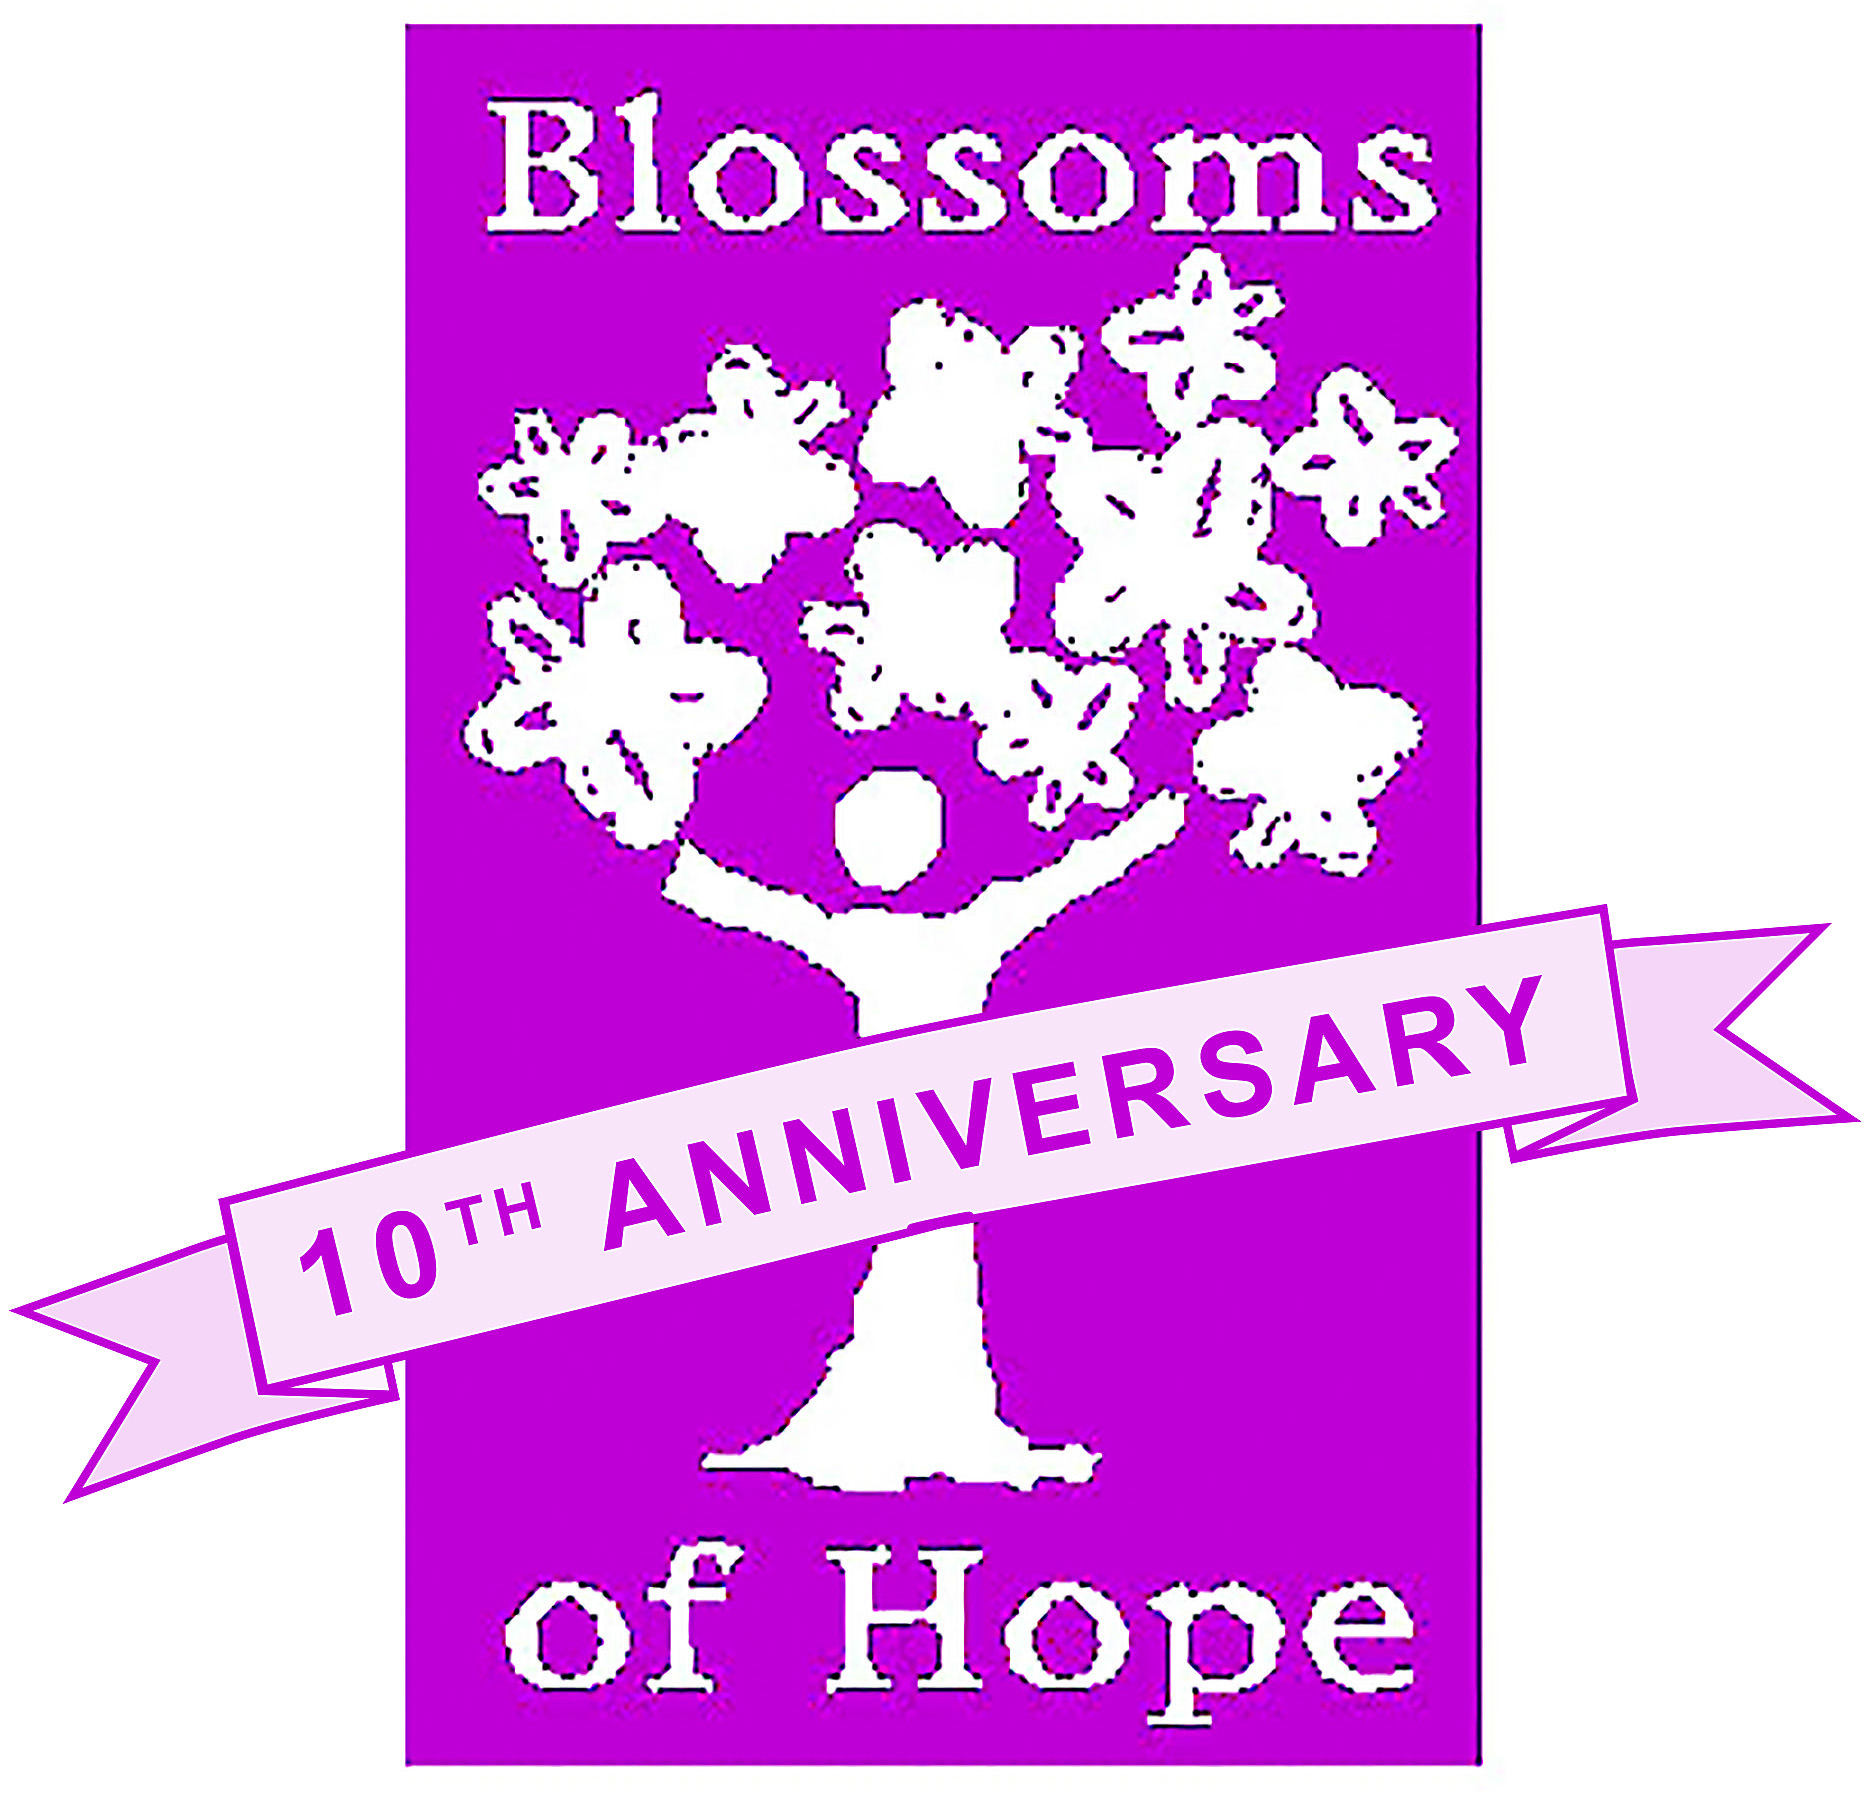 Blossom of Hope